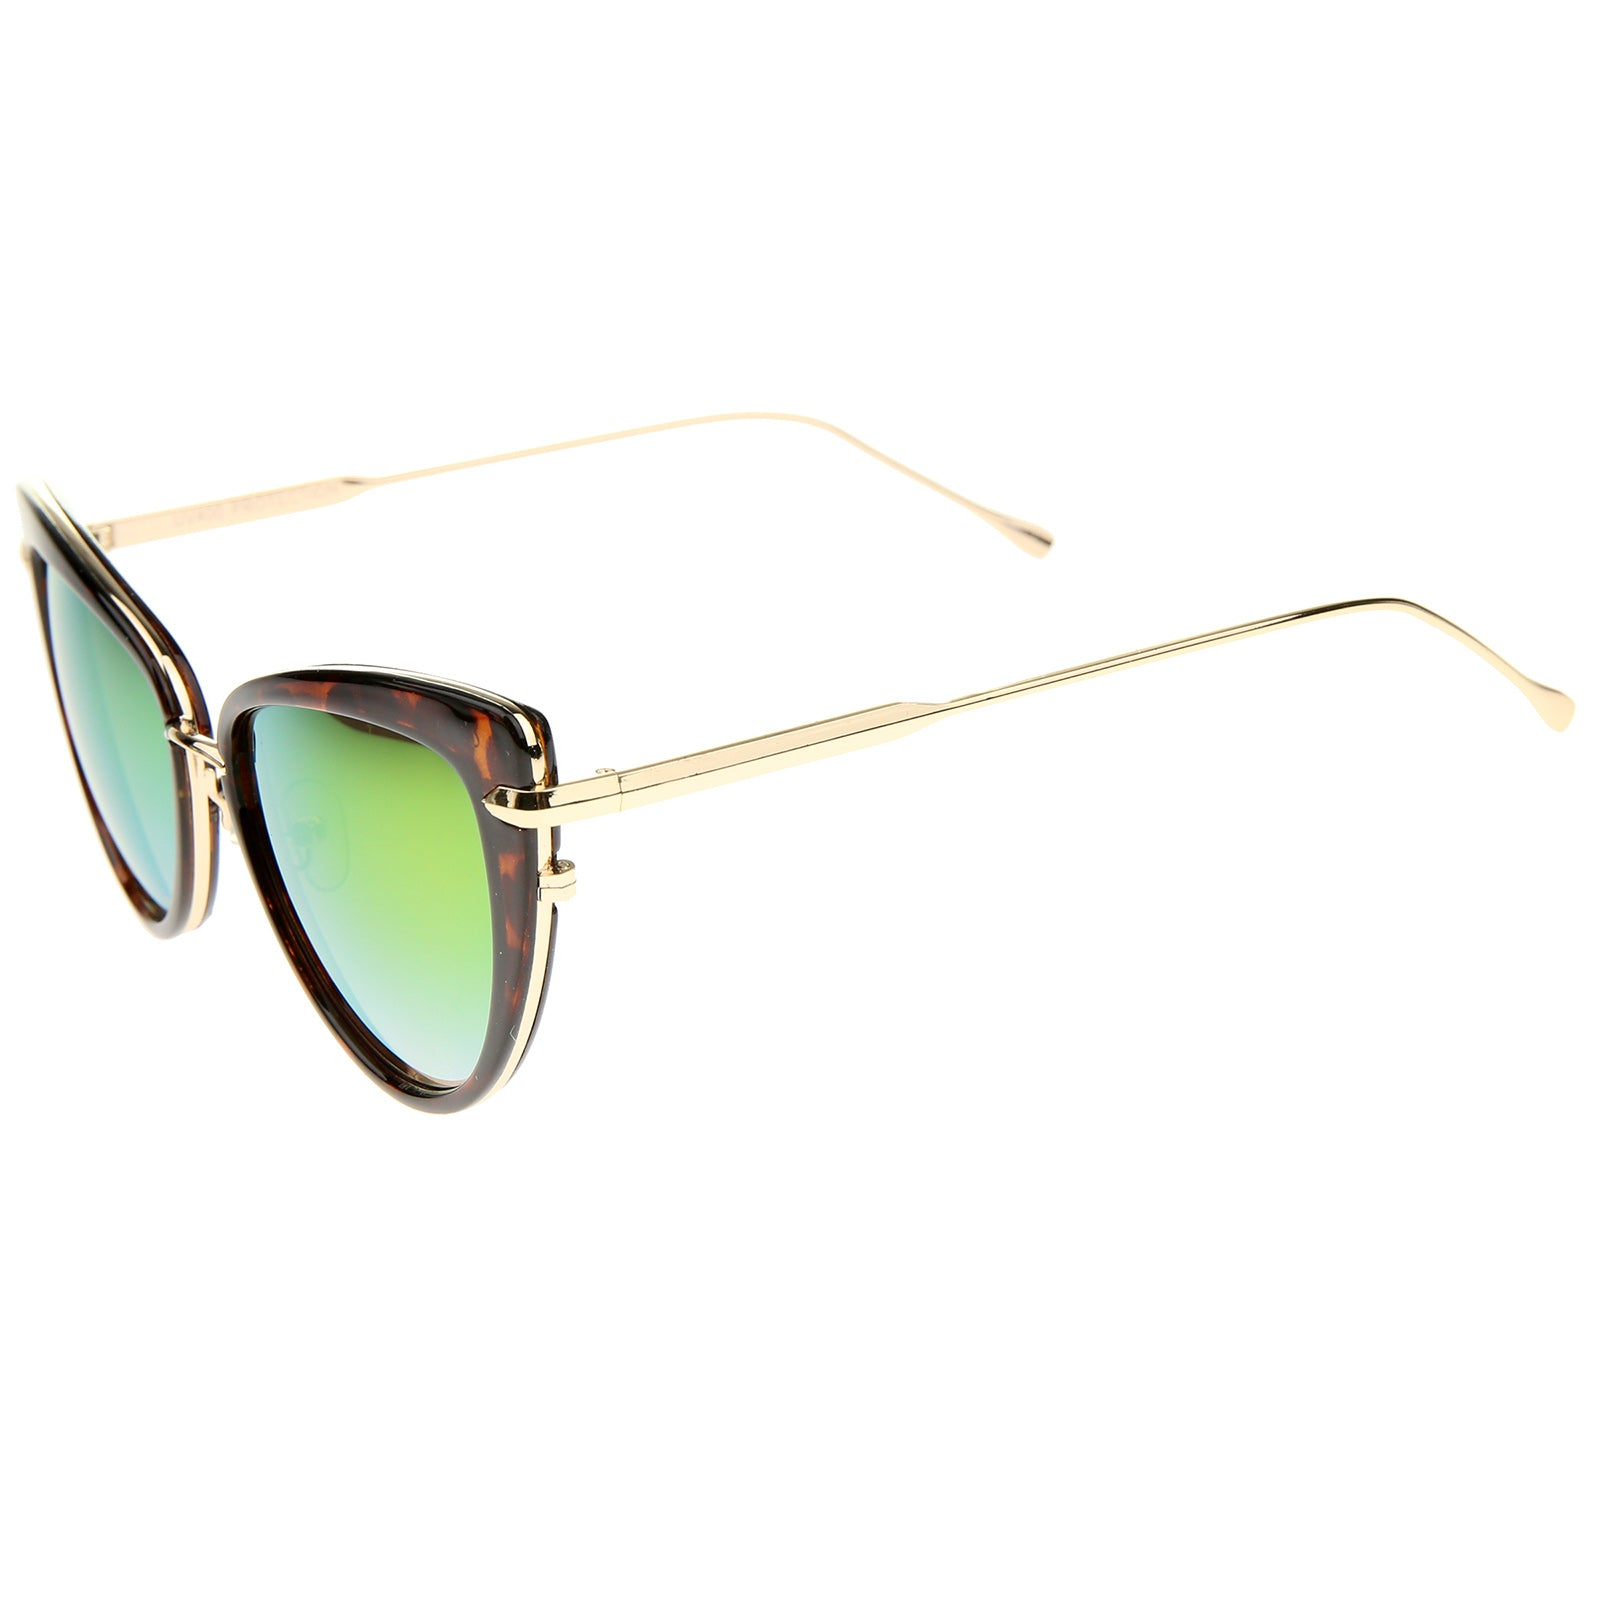 Women's High Fashion Metal Temple Super Cat Eye Sunglasses 55mm - sunglass.la - 23